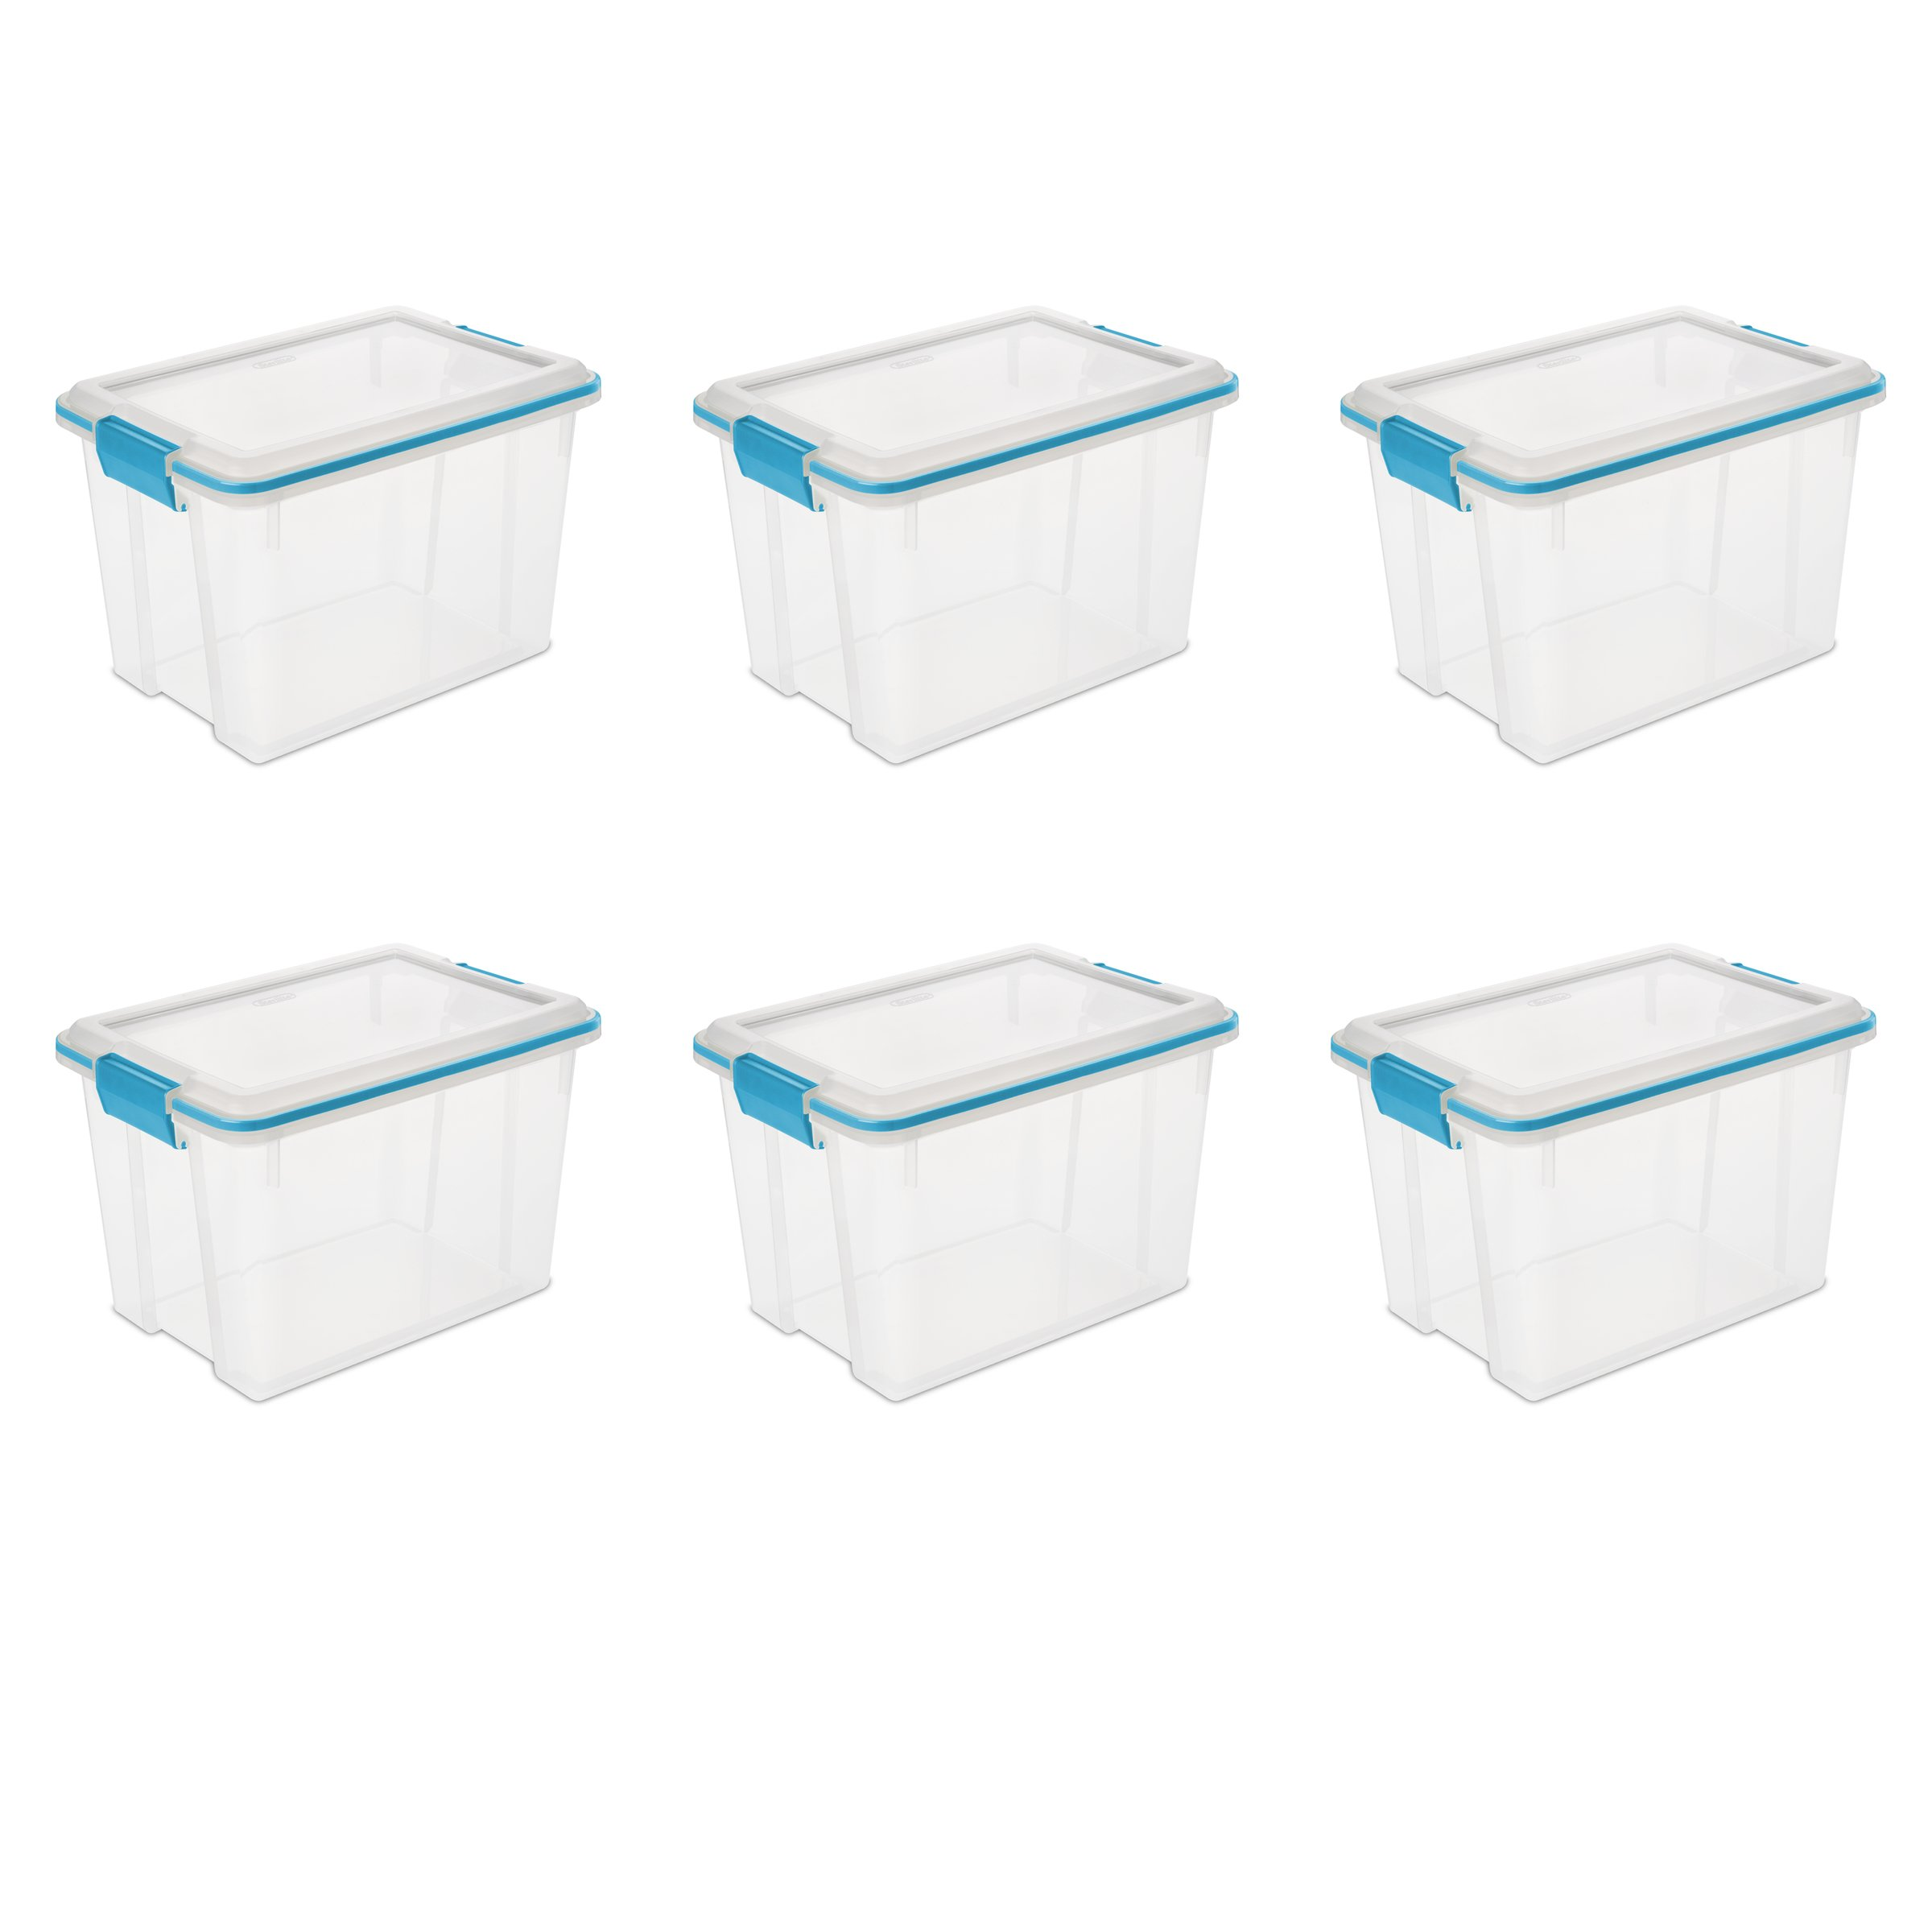 Sterilite 19324306 Gasket Box See-Through Lid and Base with Blue Aquarium Latches and Gasket, 20-Quart, 6-Pack by STERILITE